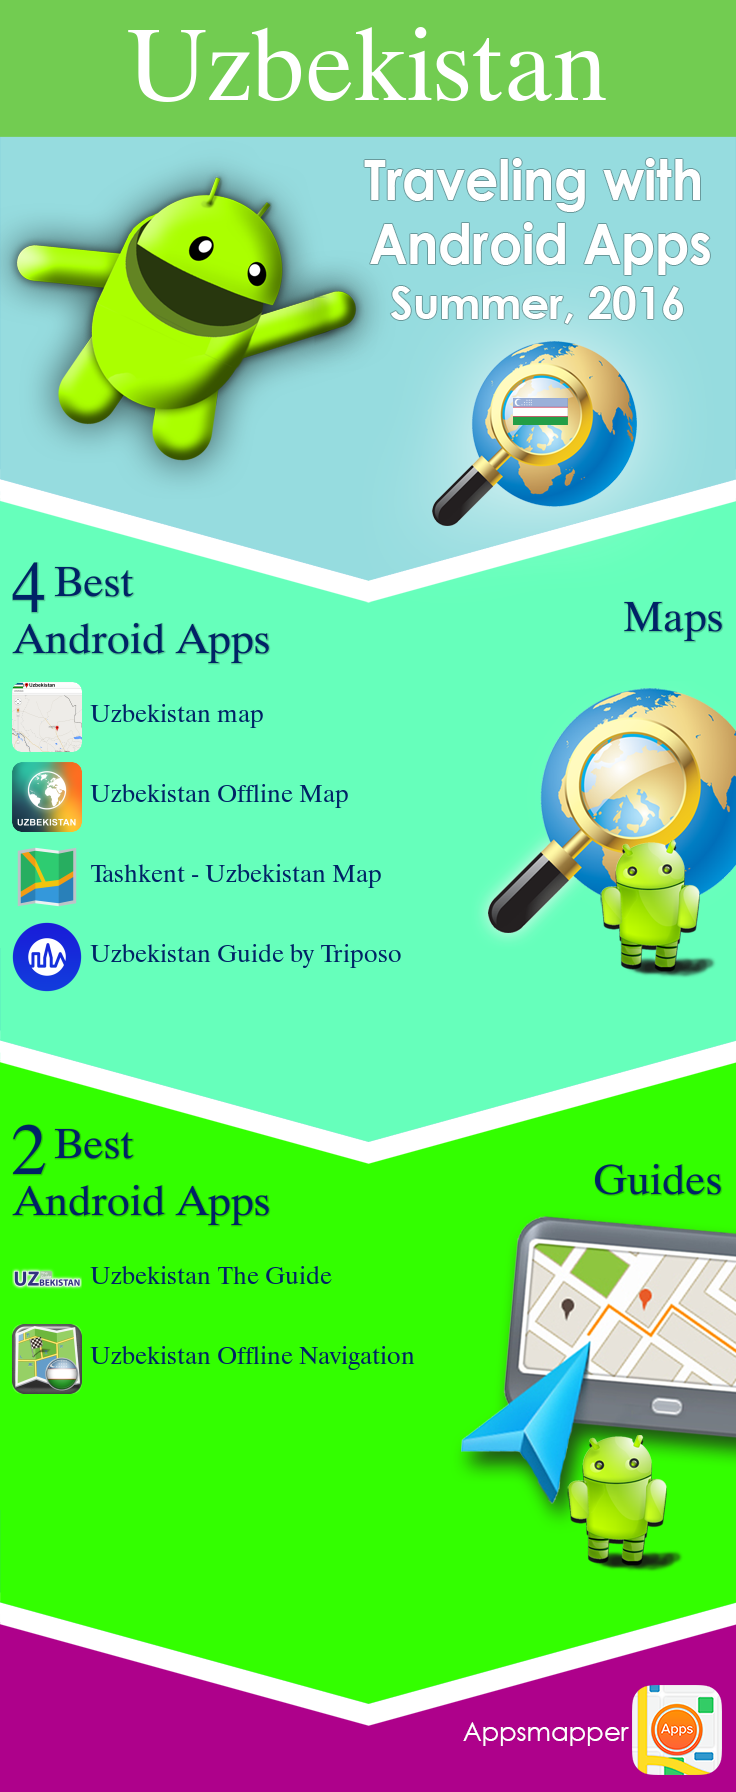 Uzbekistan Android apps Travel Guides, Maps